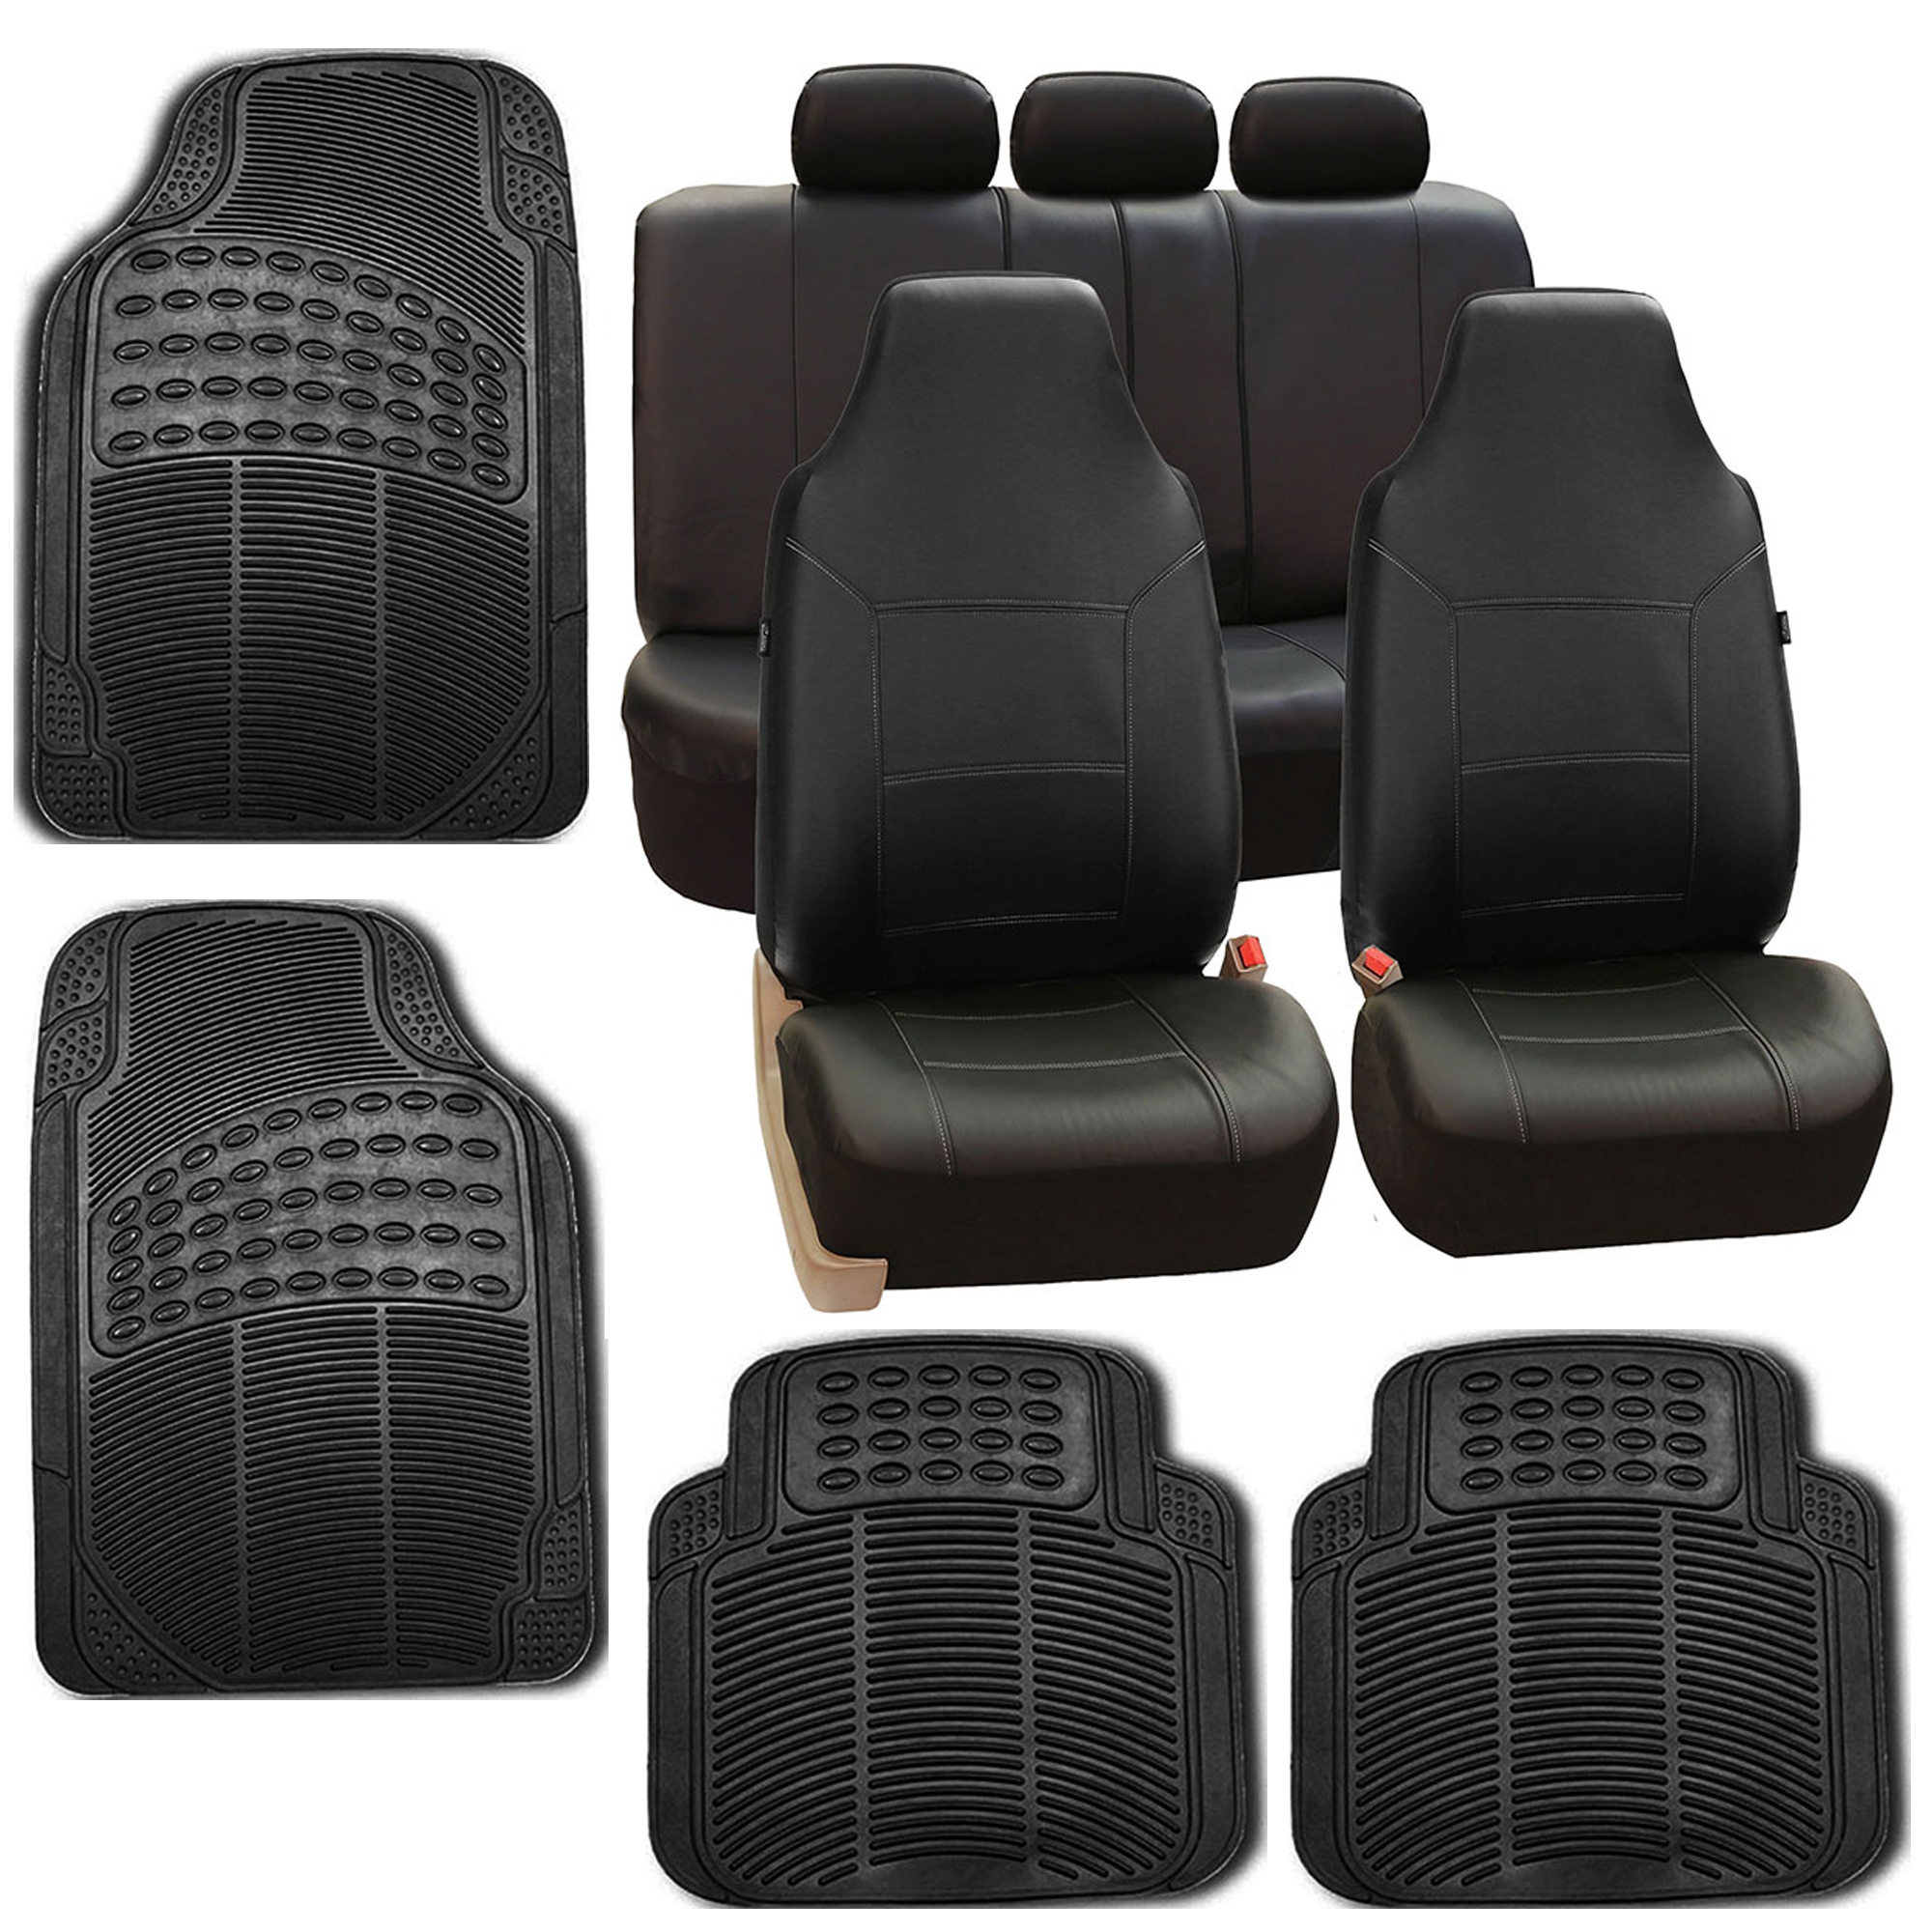 faux leather car seat covers for auto black cover w floor mats ebay. Black Bedroom Furniture Sets. Home Design Ideas